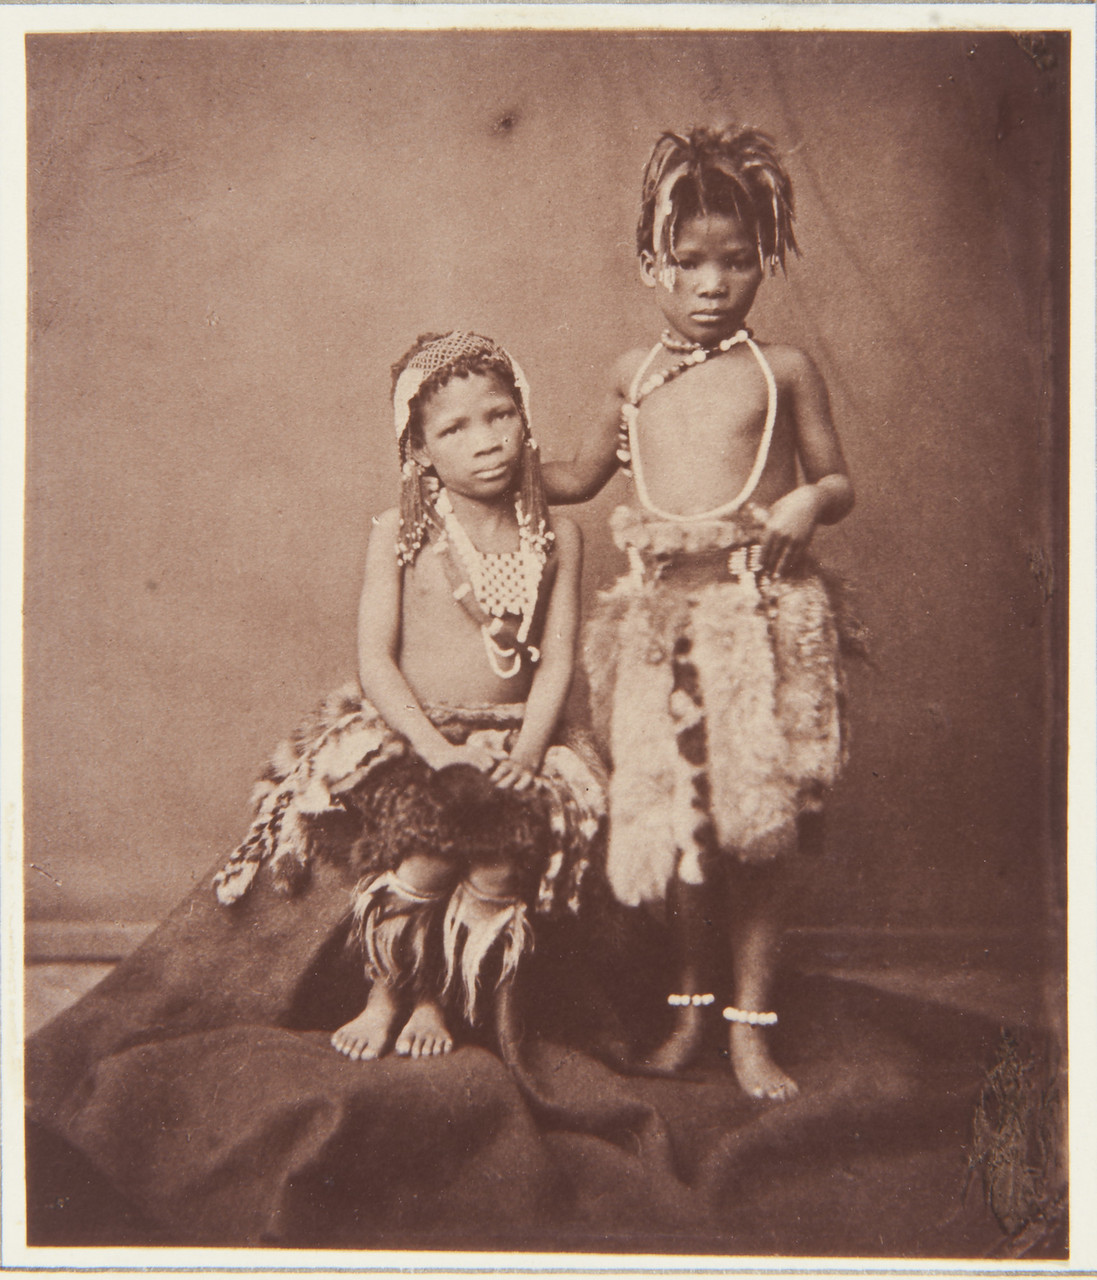 the-aborigines-of-south-africa-on-display-for-the-show-in-england-1853